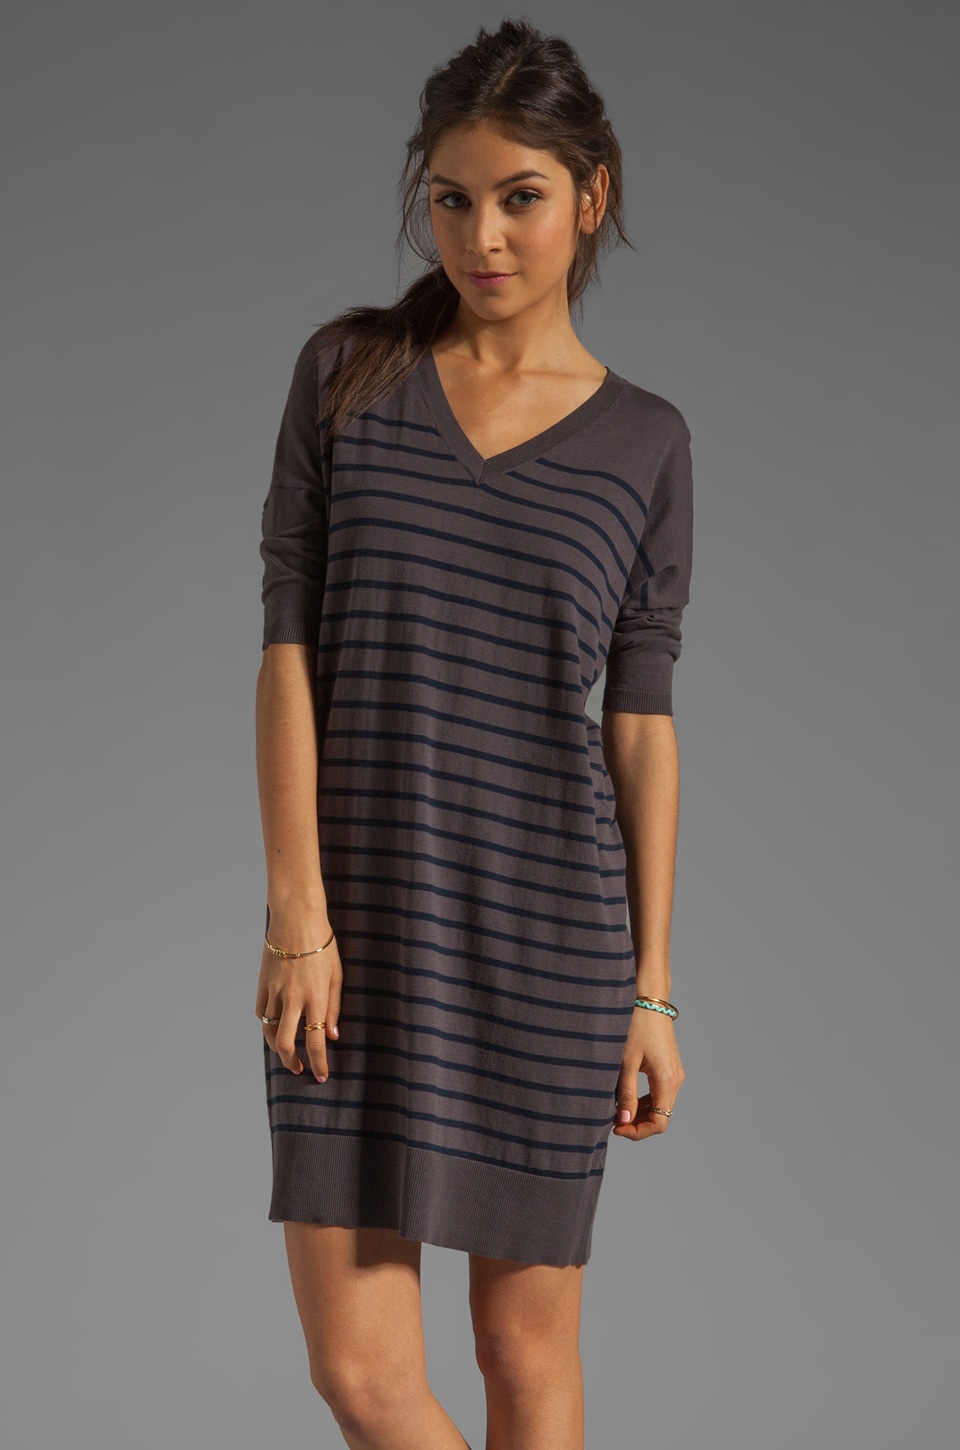 DemyLee Chelsea Striped Dress in Dark Grey/Navy